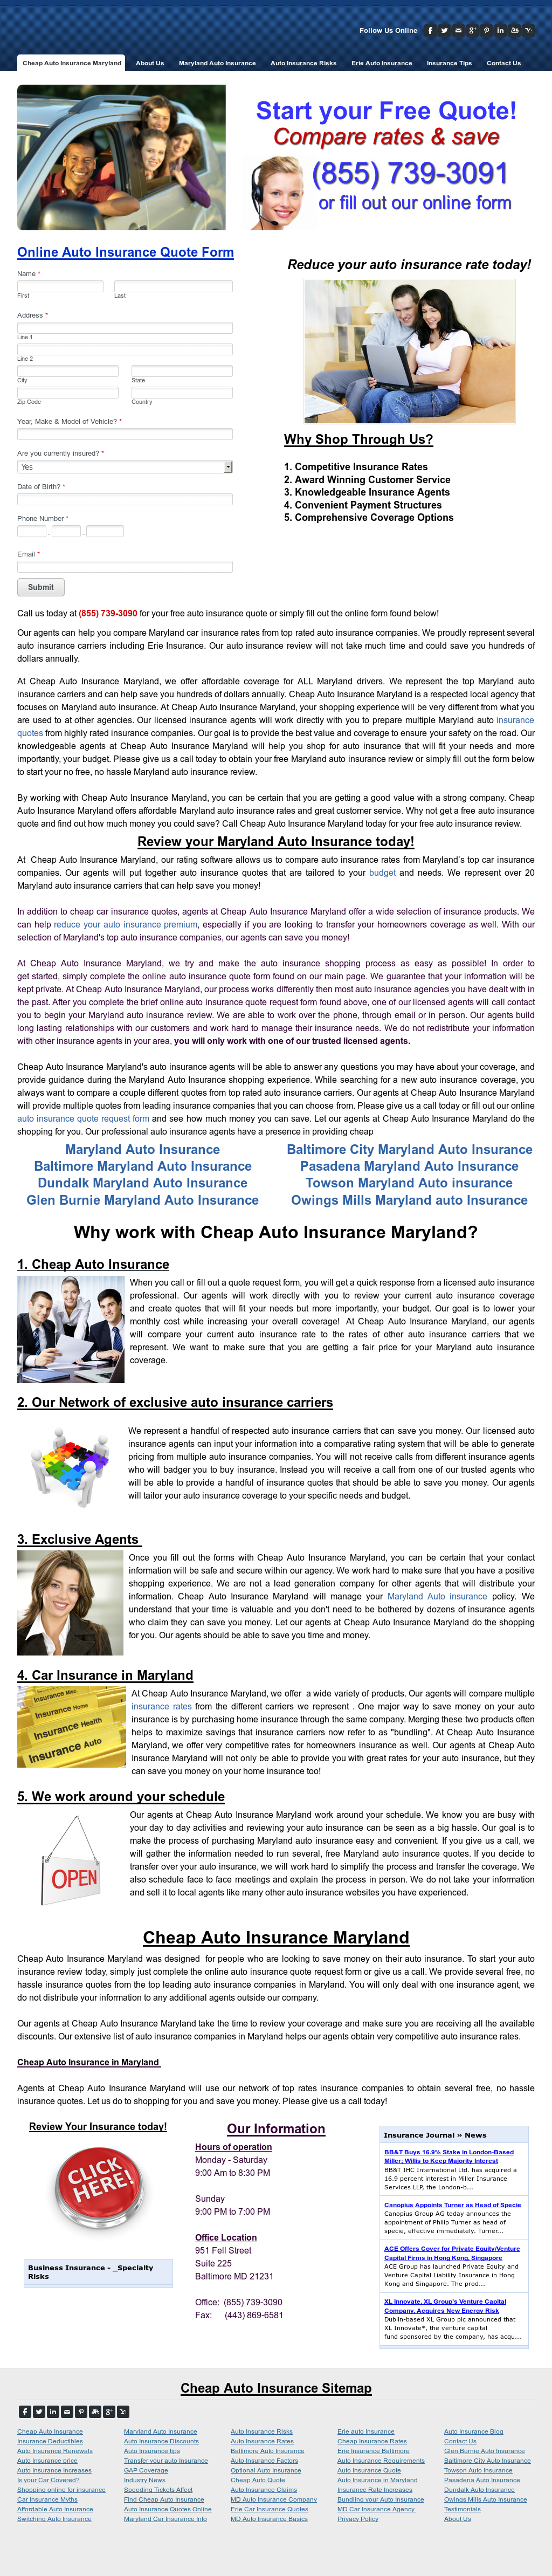 Cheap Auto Insurance Maryland petitors Revenue and Employees